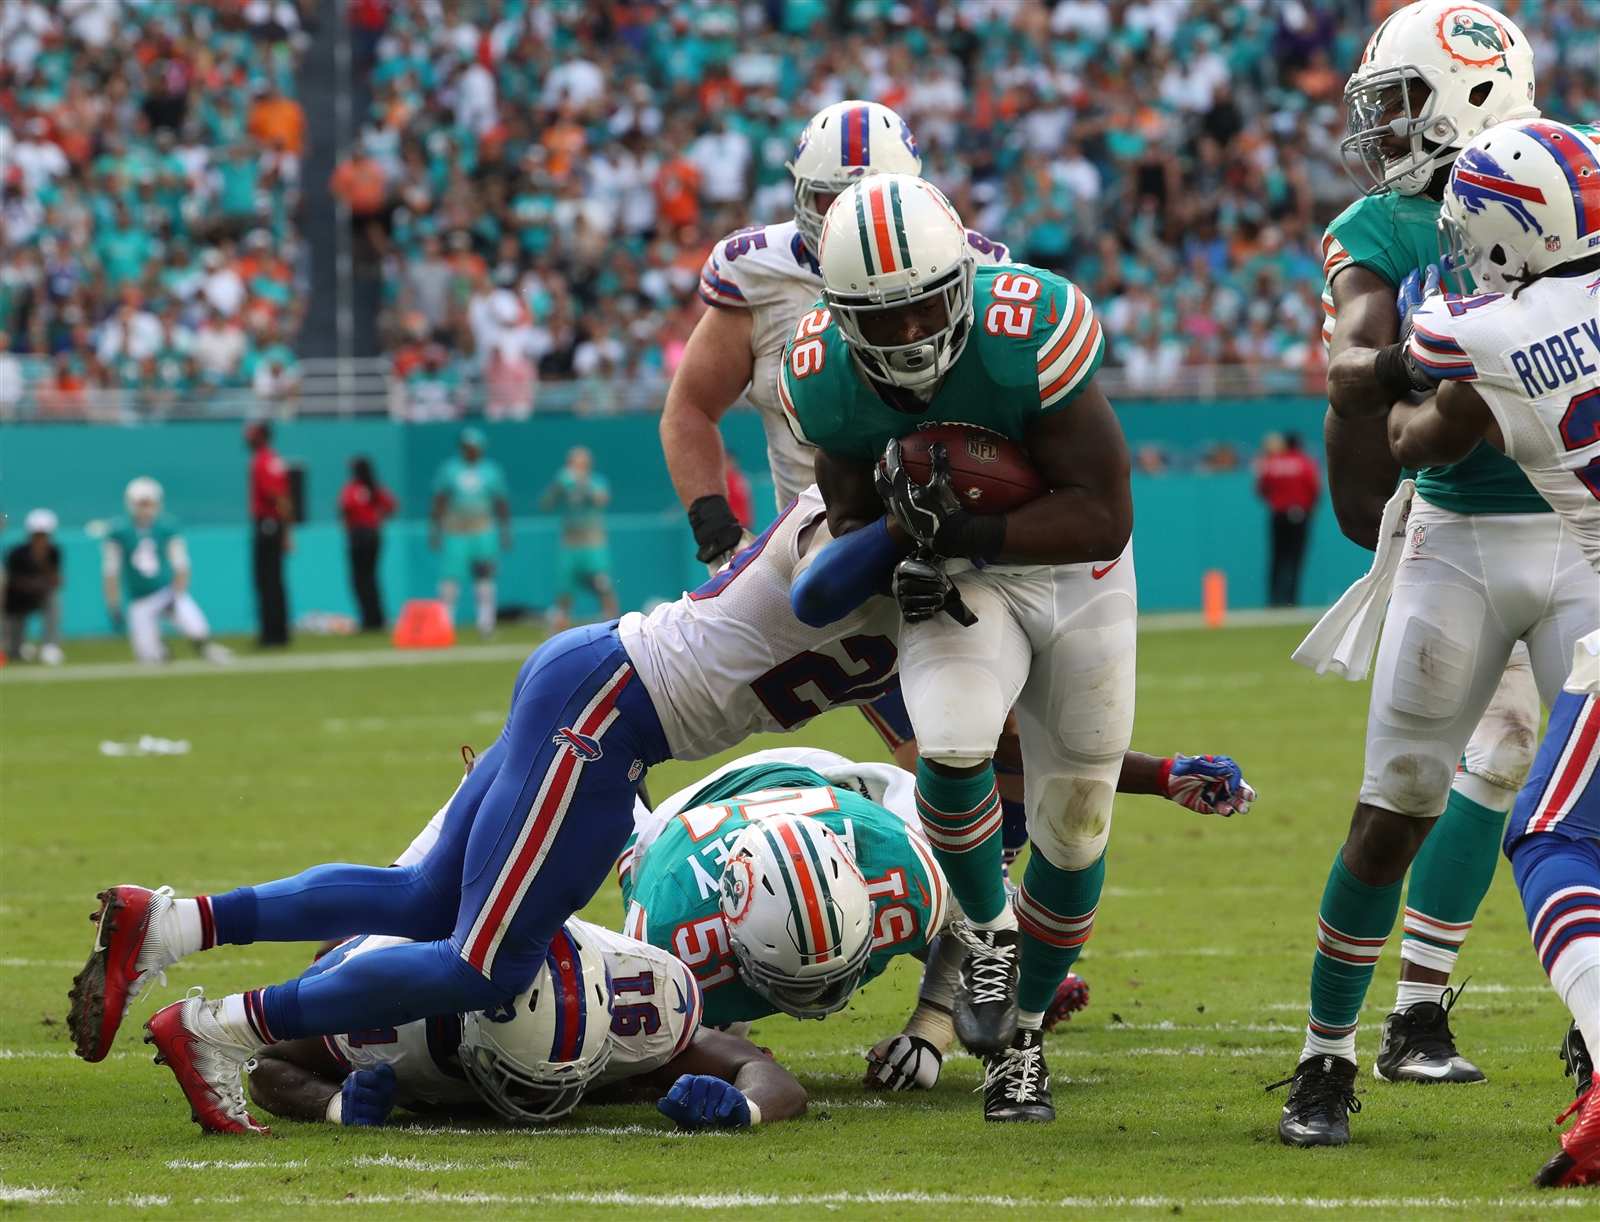 Bills safety Corey Graham can't bring down Dolphins running back Damien Williams on Sunday. Missed tackles were a big problem for the Buffalo defense. (James P. McCoy/Buffalo News)